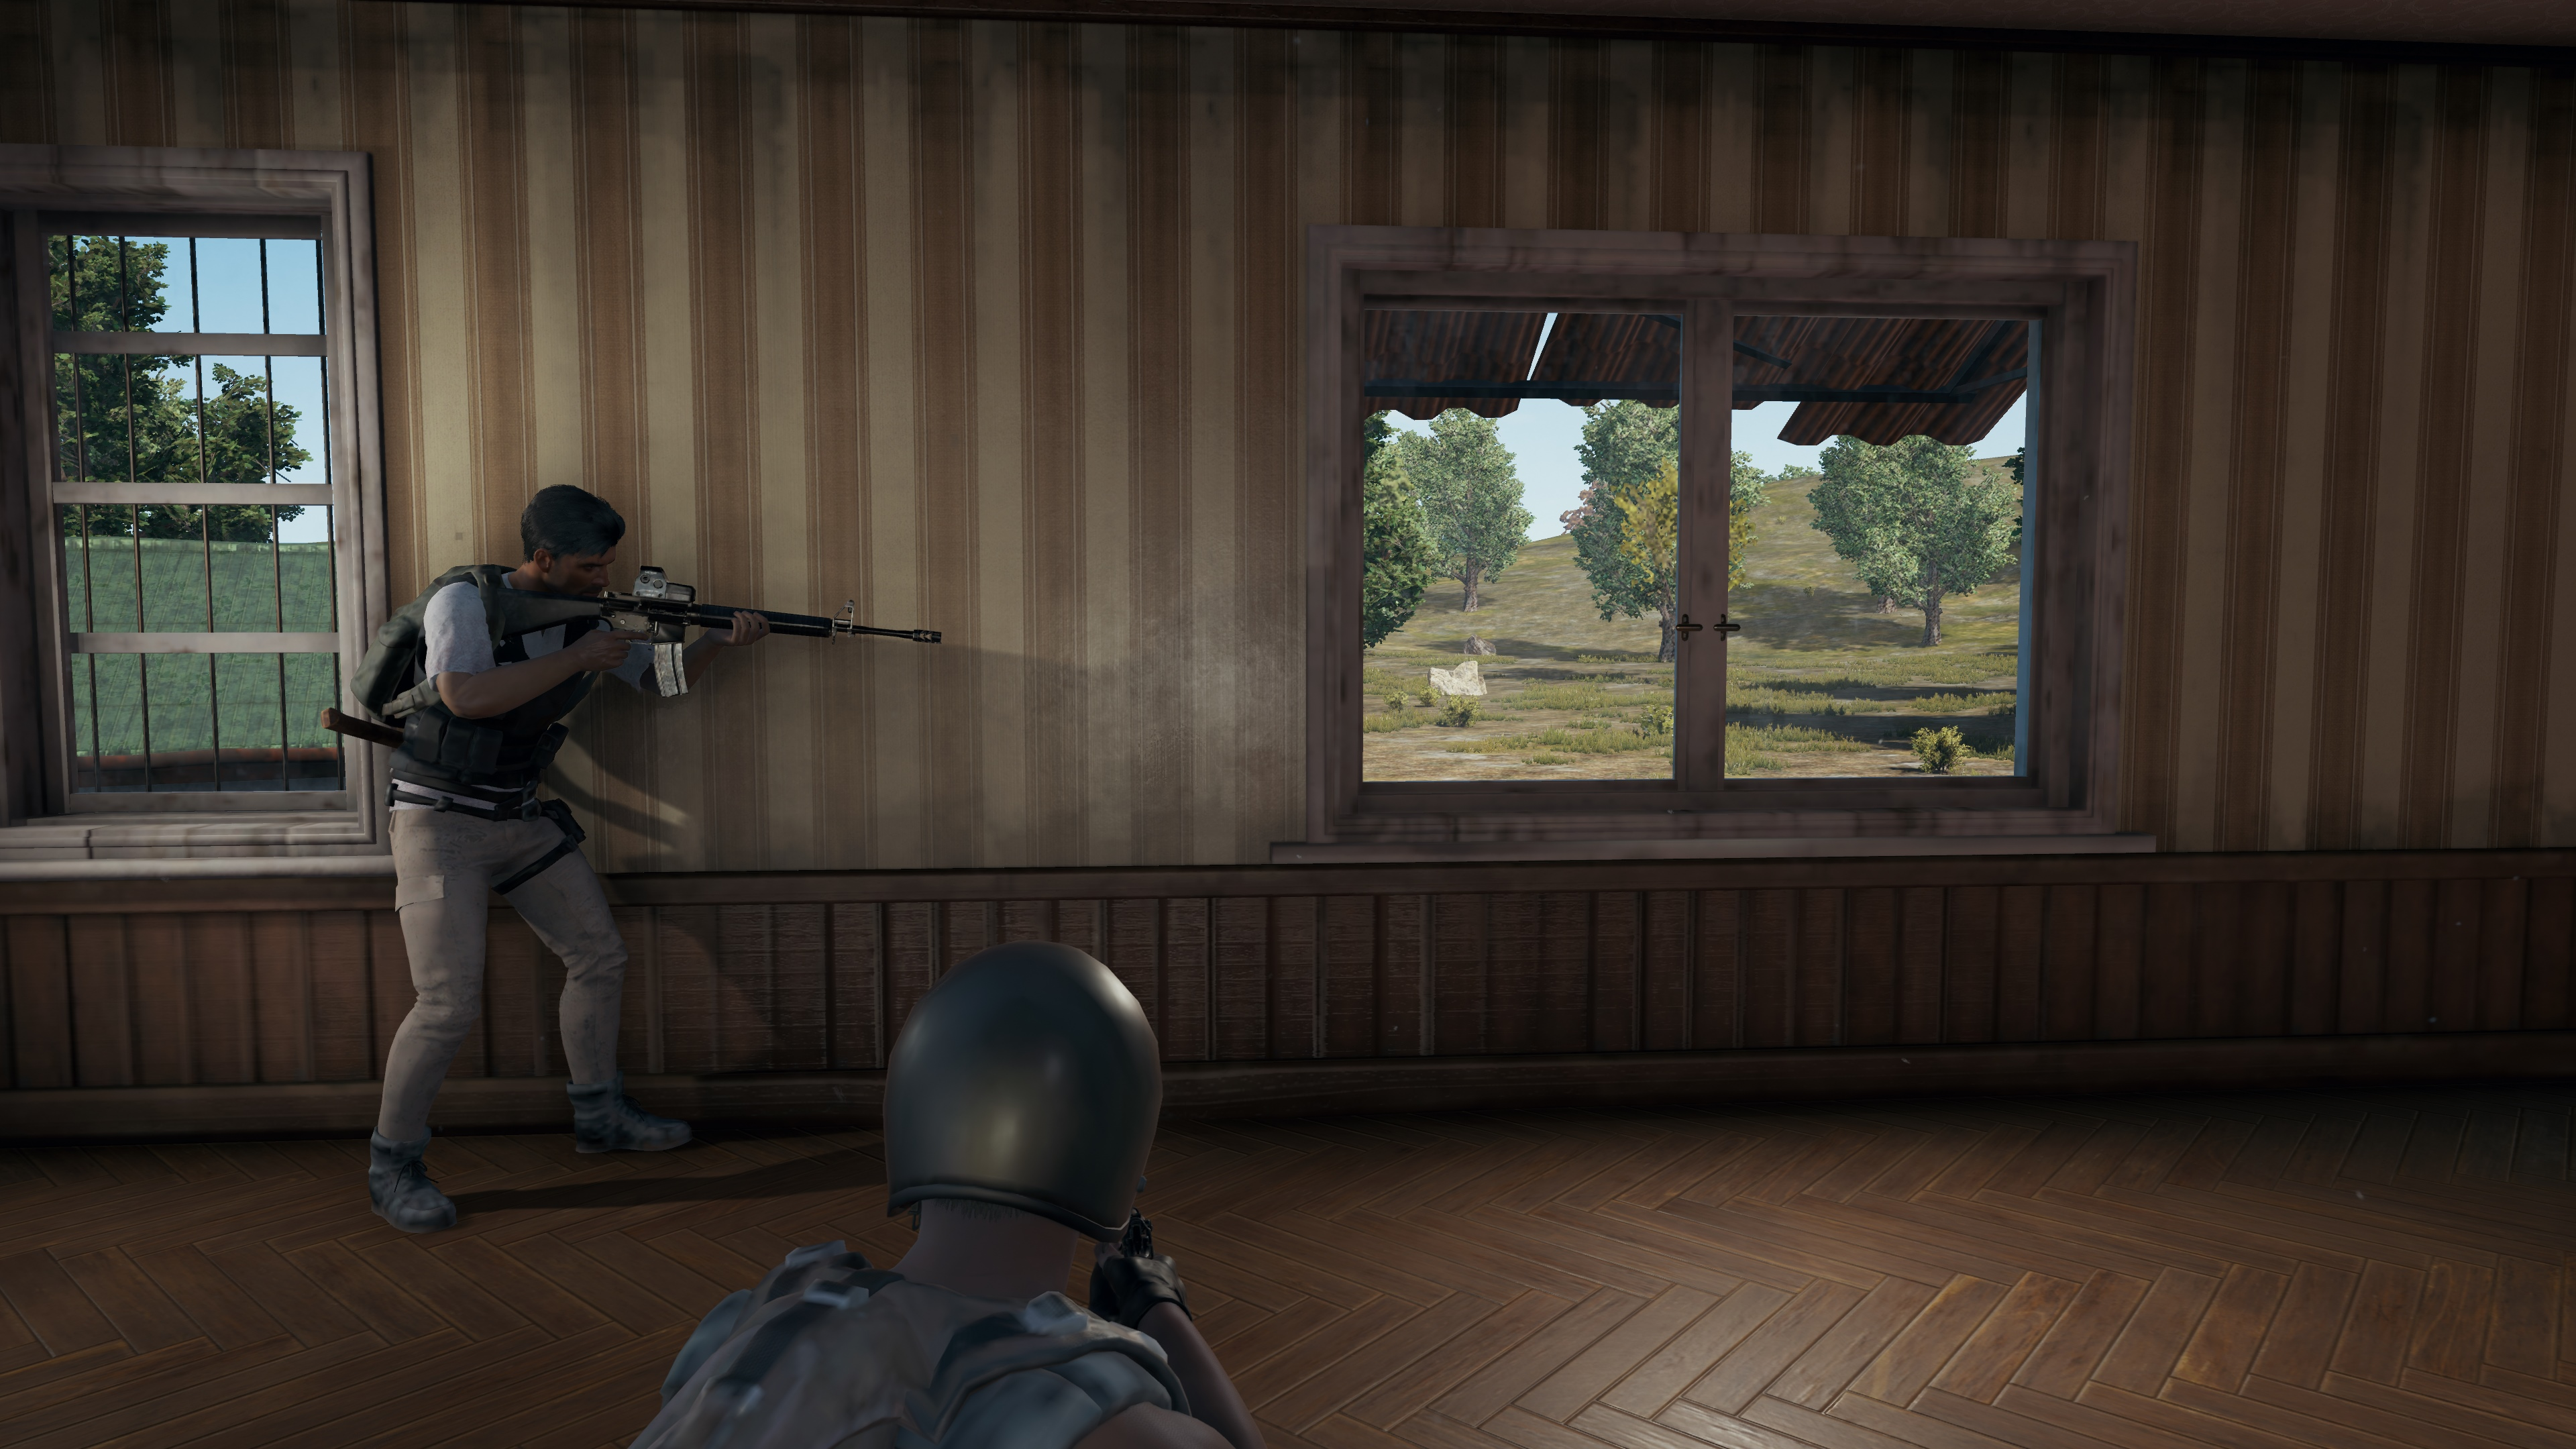 How To Improve In Pubg: Could PUBG Land On The PS4 In The Future?